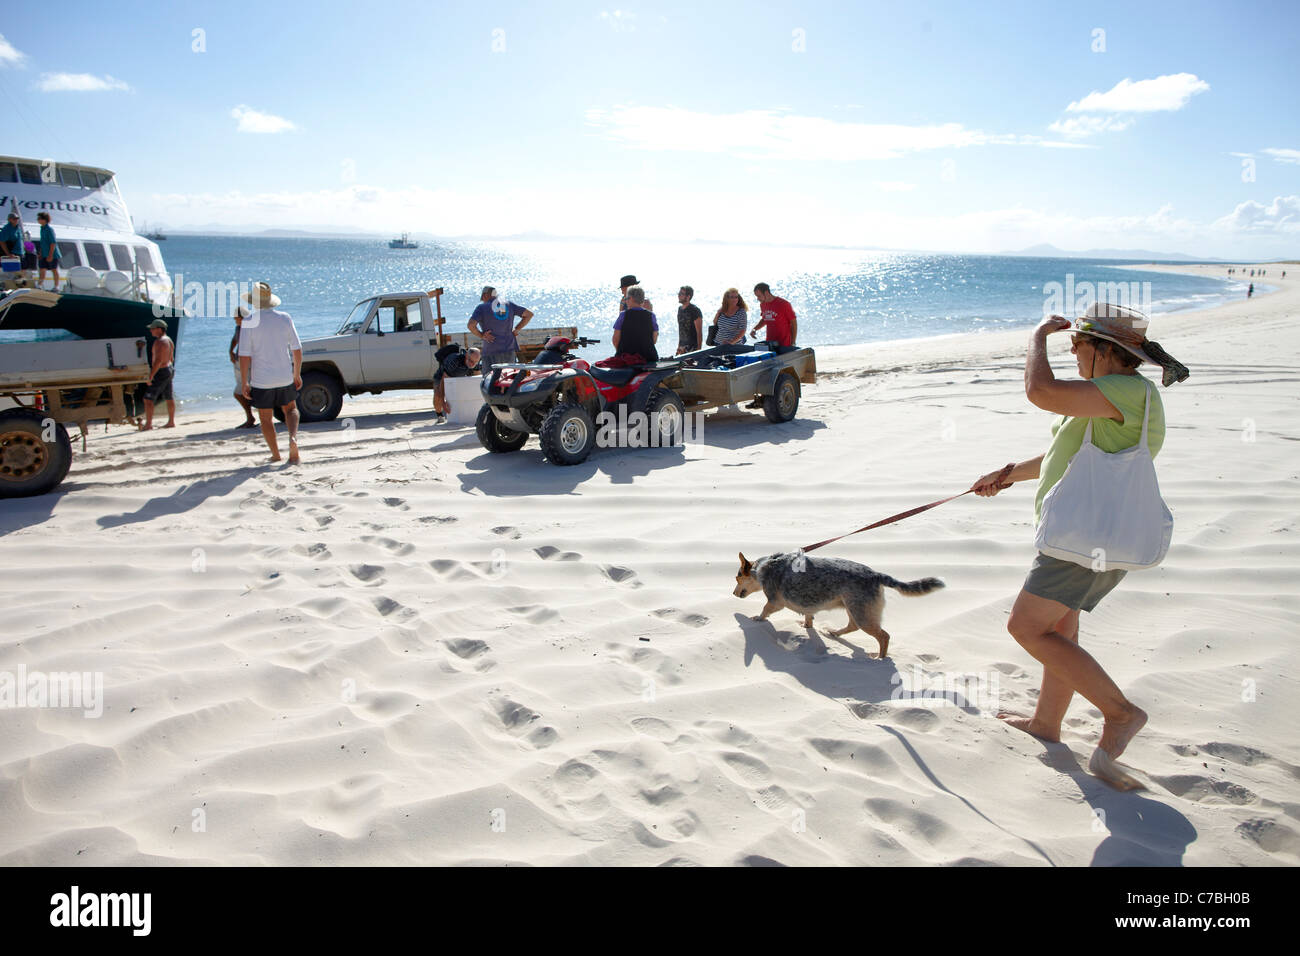 Ankunft am Long Beach südlichen Great Keppel Island Great Barrier Reef Marine Park UNESCO Welt Erbe Website Stockbild